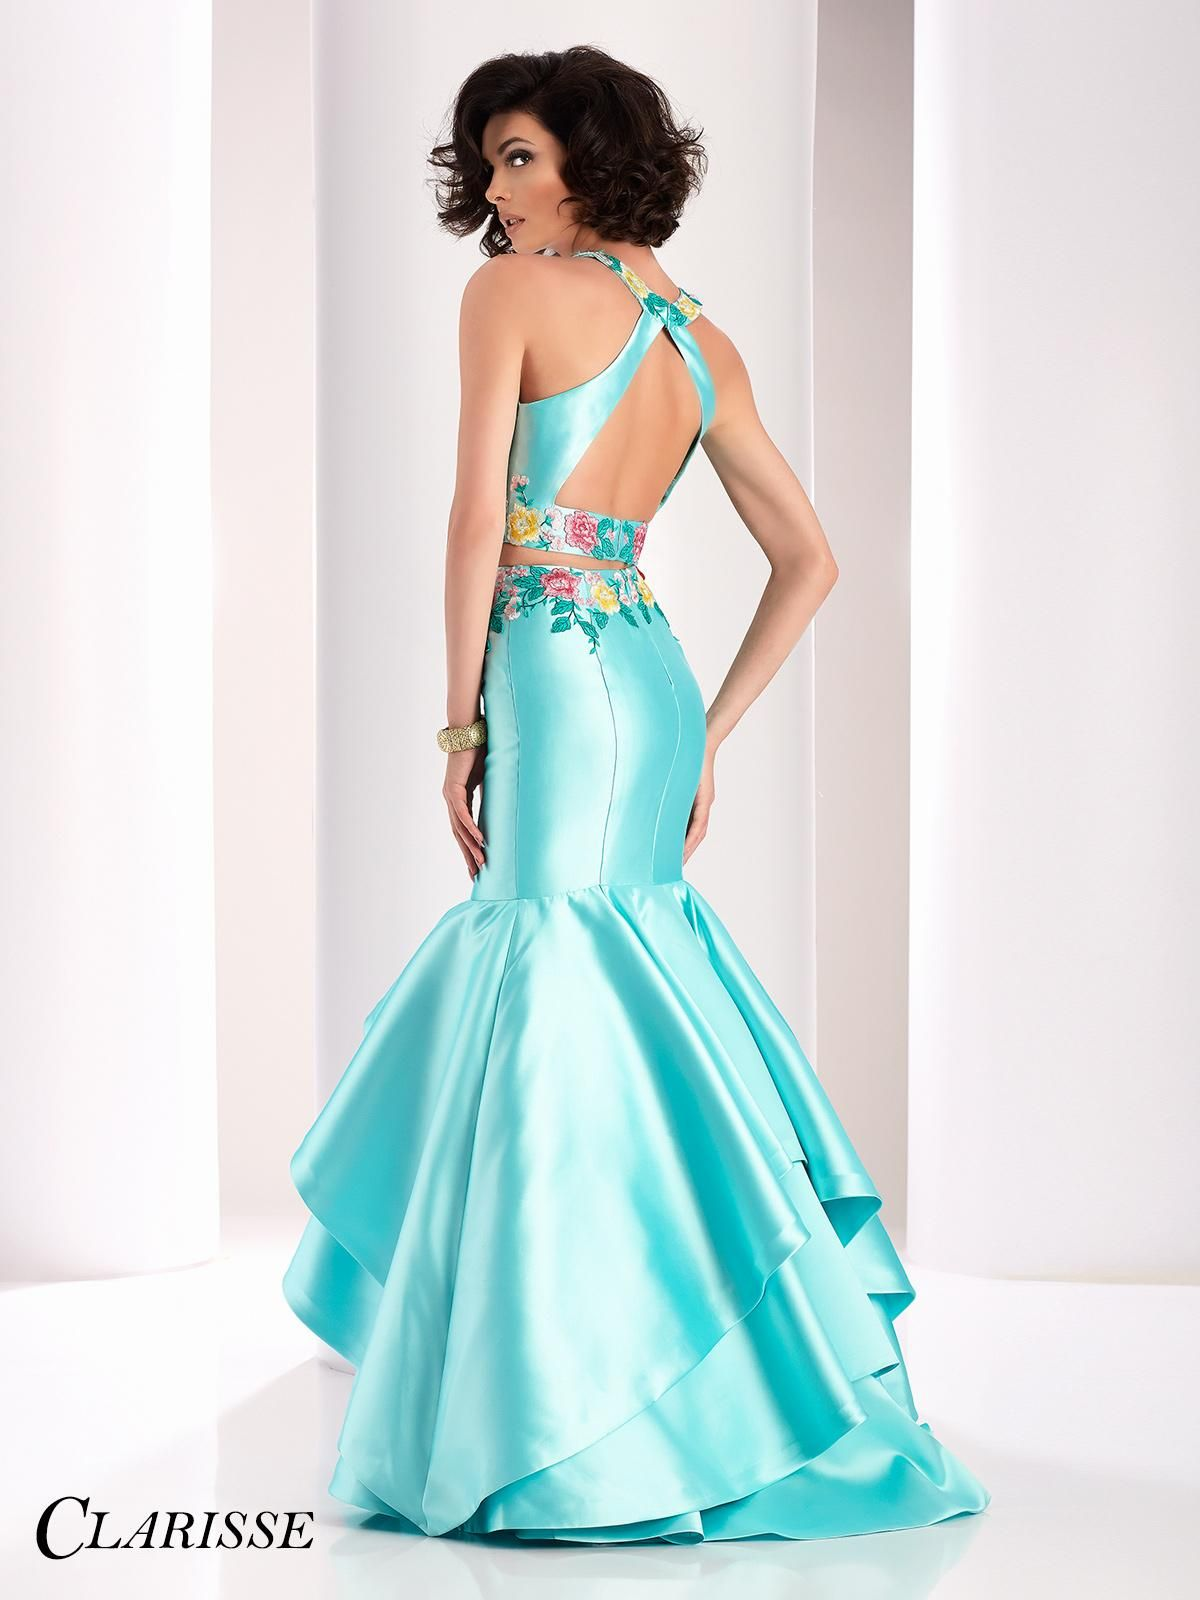 Clarisse Two Piece Tiered Mermaid Prom Dress 3038. Make a statement ...